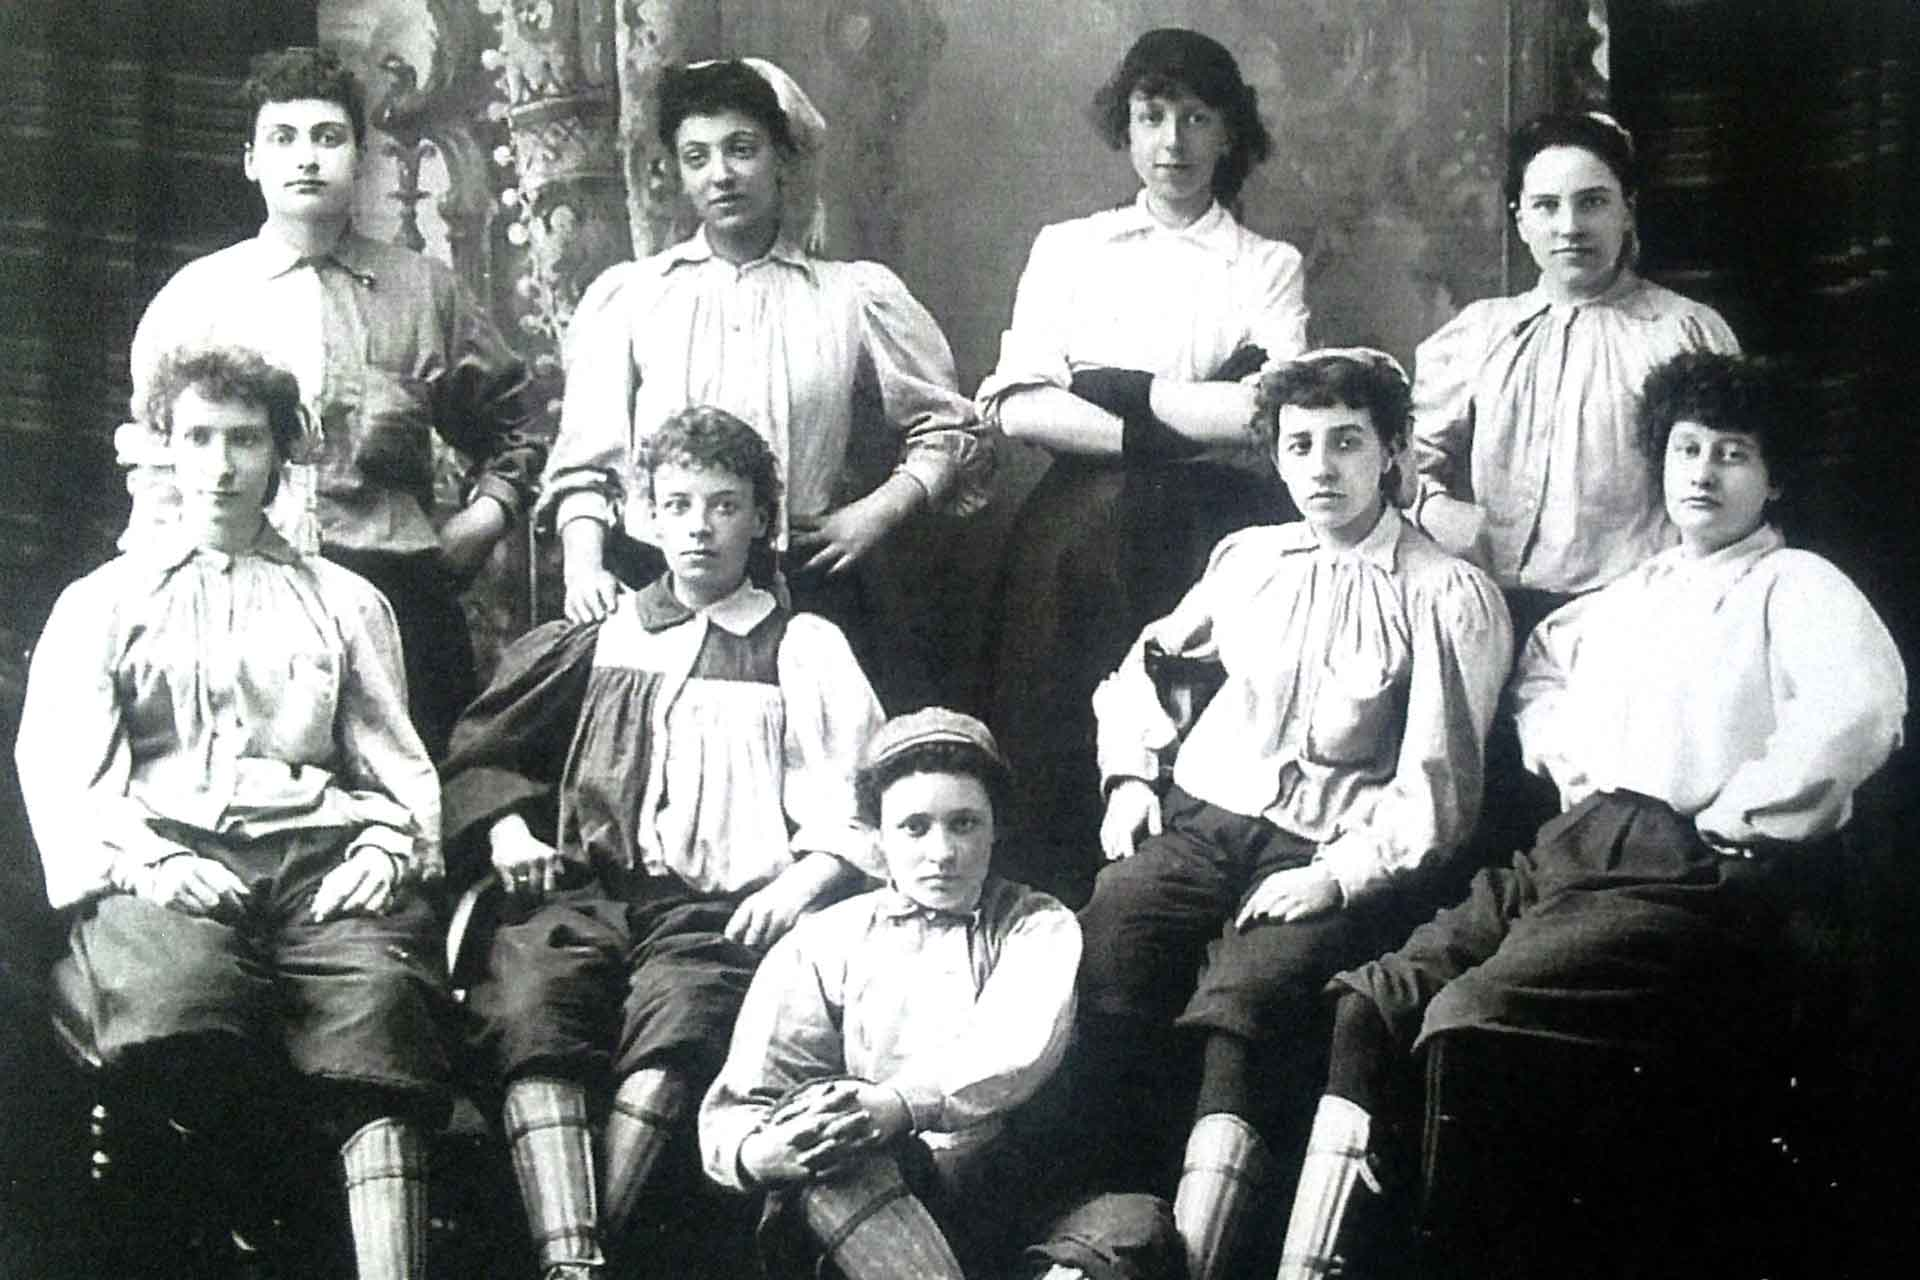 Emma Clarke (back row, second from left) made her British Ladies team debut in 1895 (Photo: Stuart Gibbs, Wikimedia Commons).